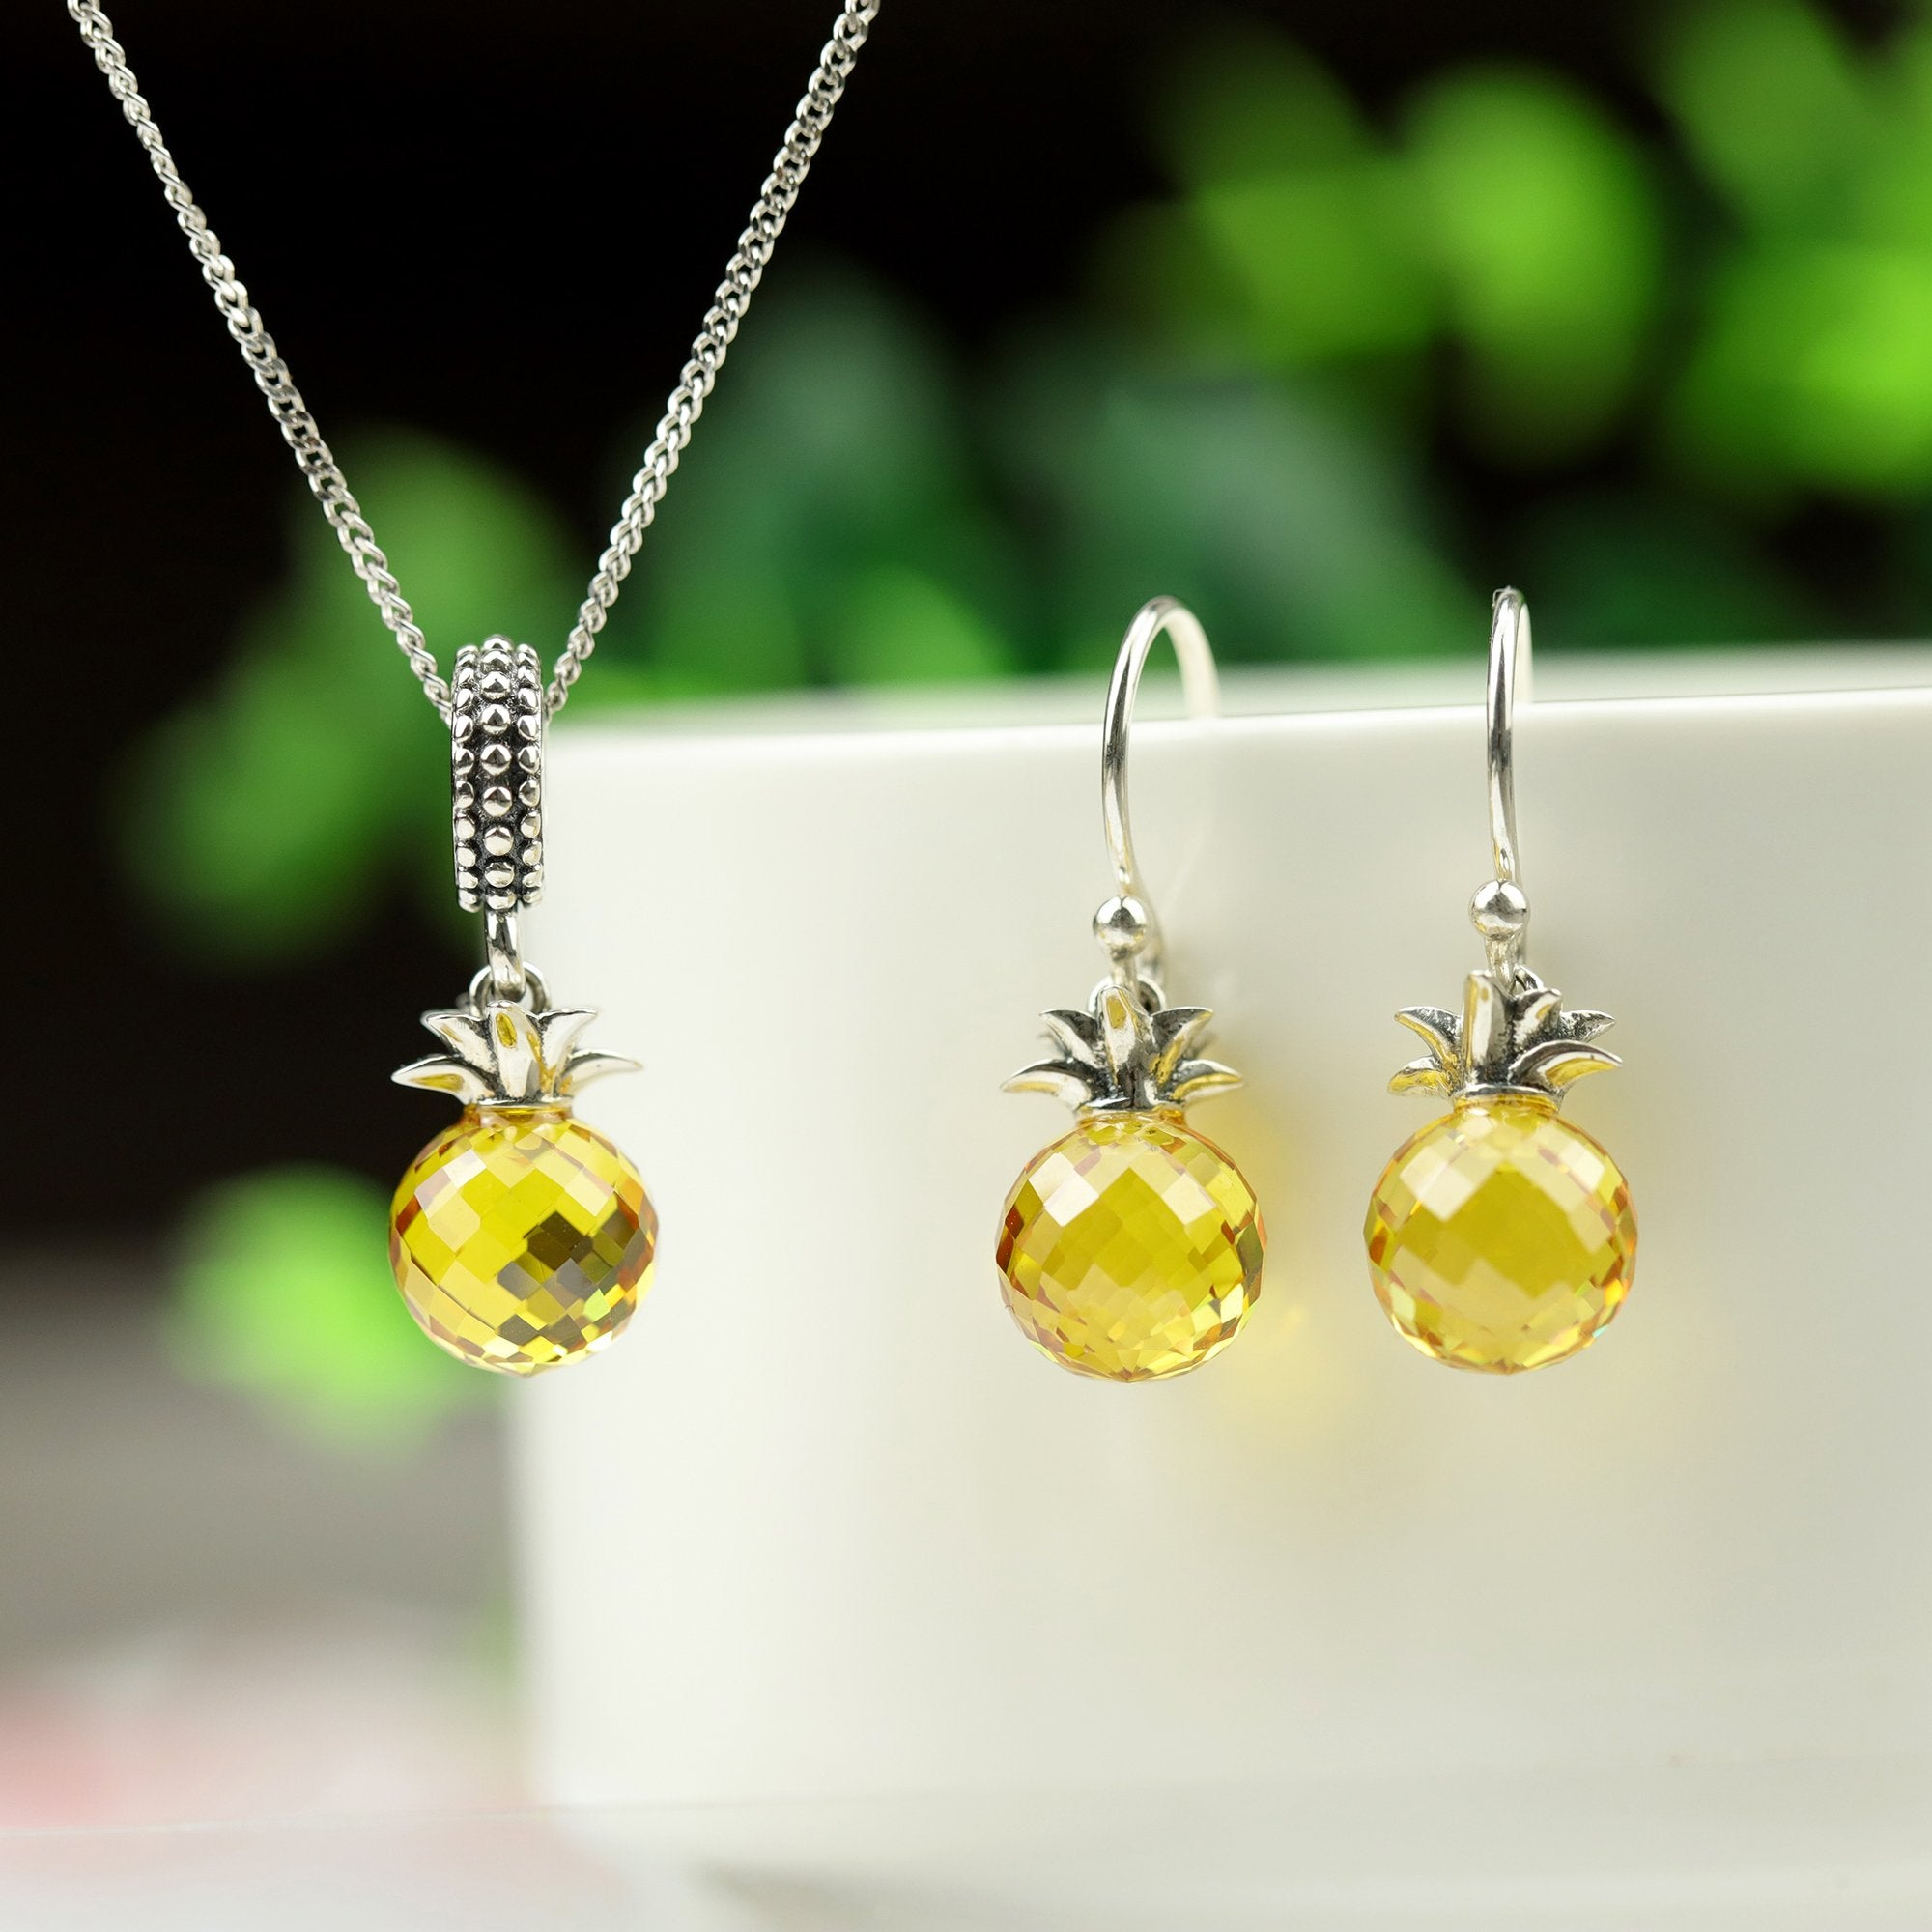 Stunning Pineapple Jewelry Set